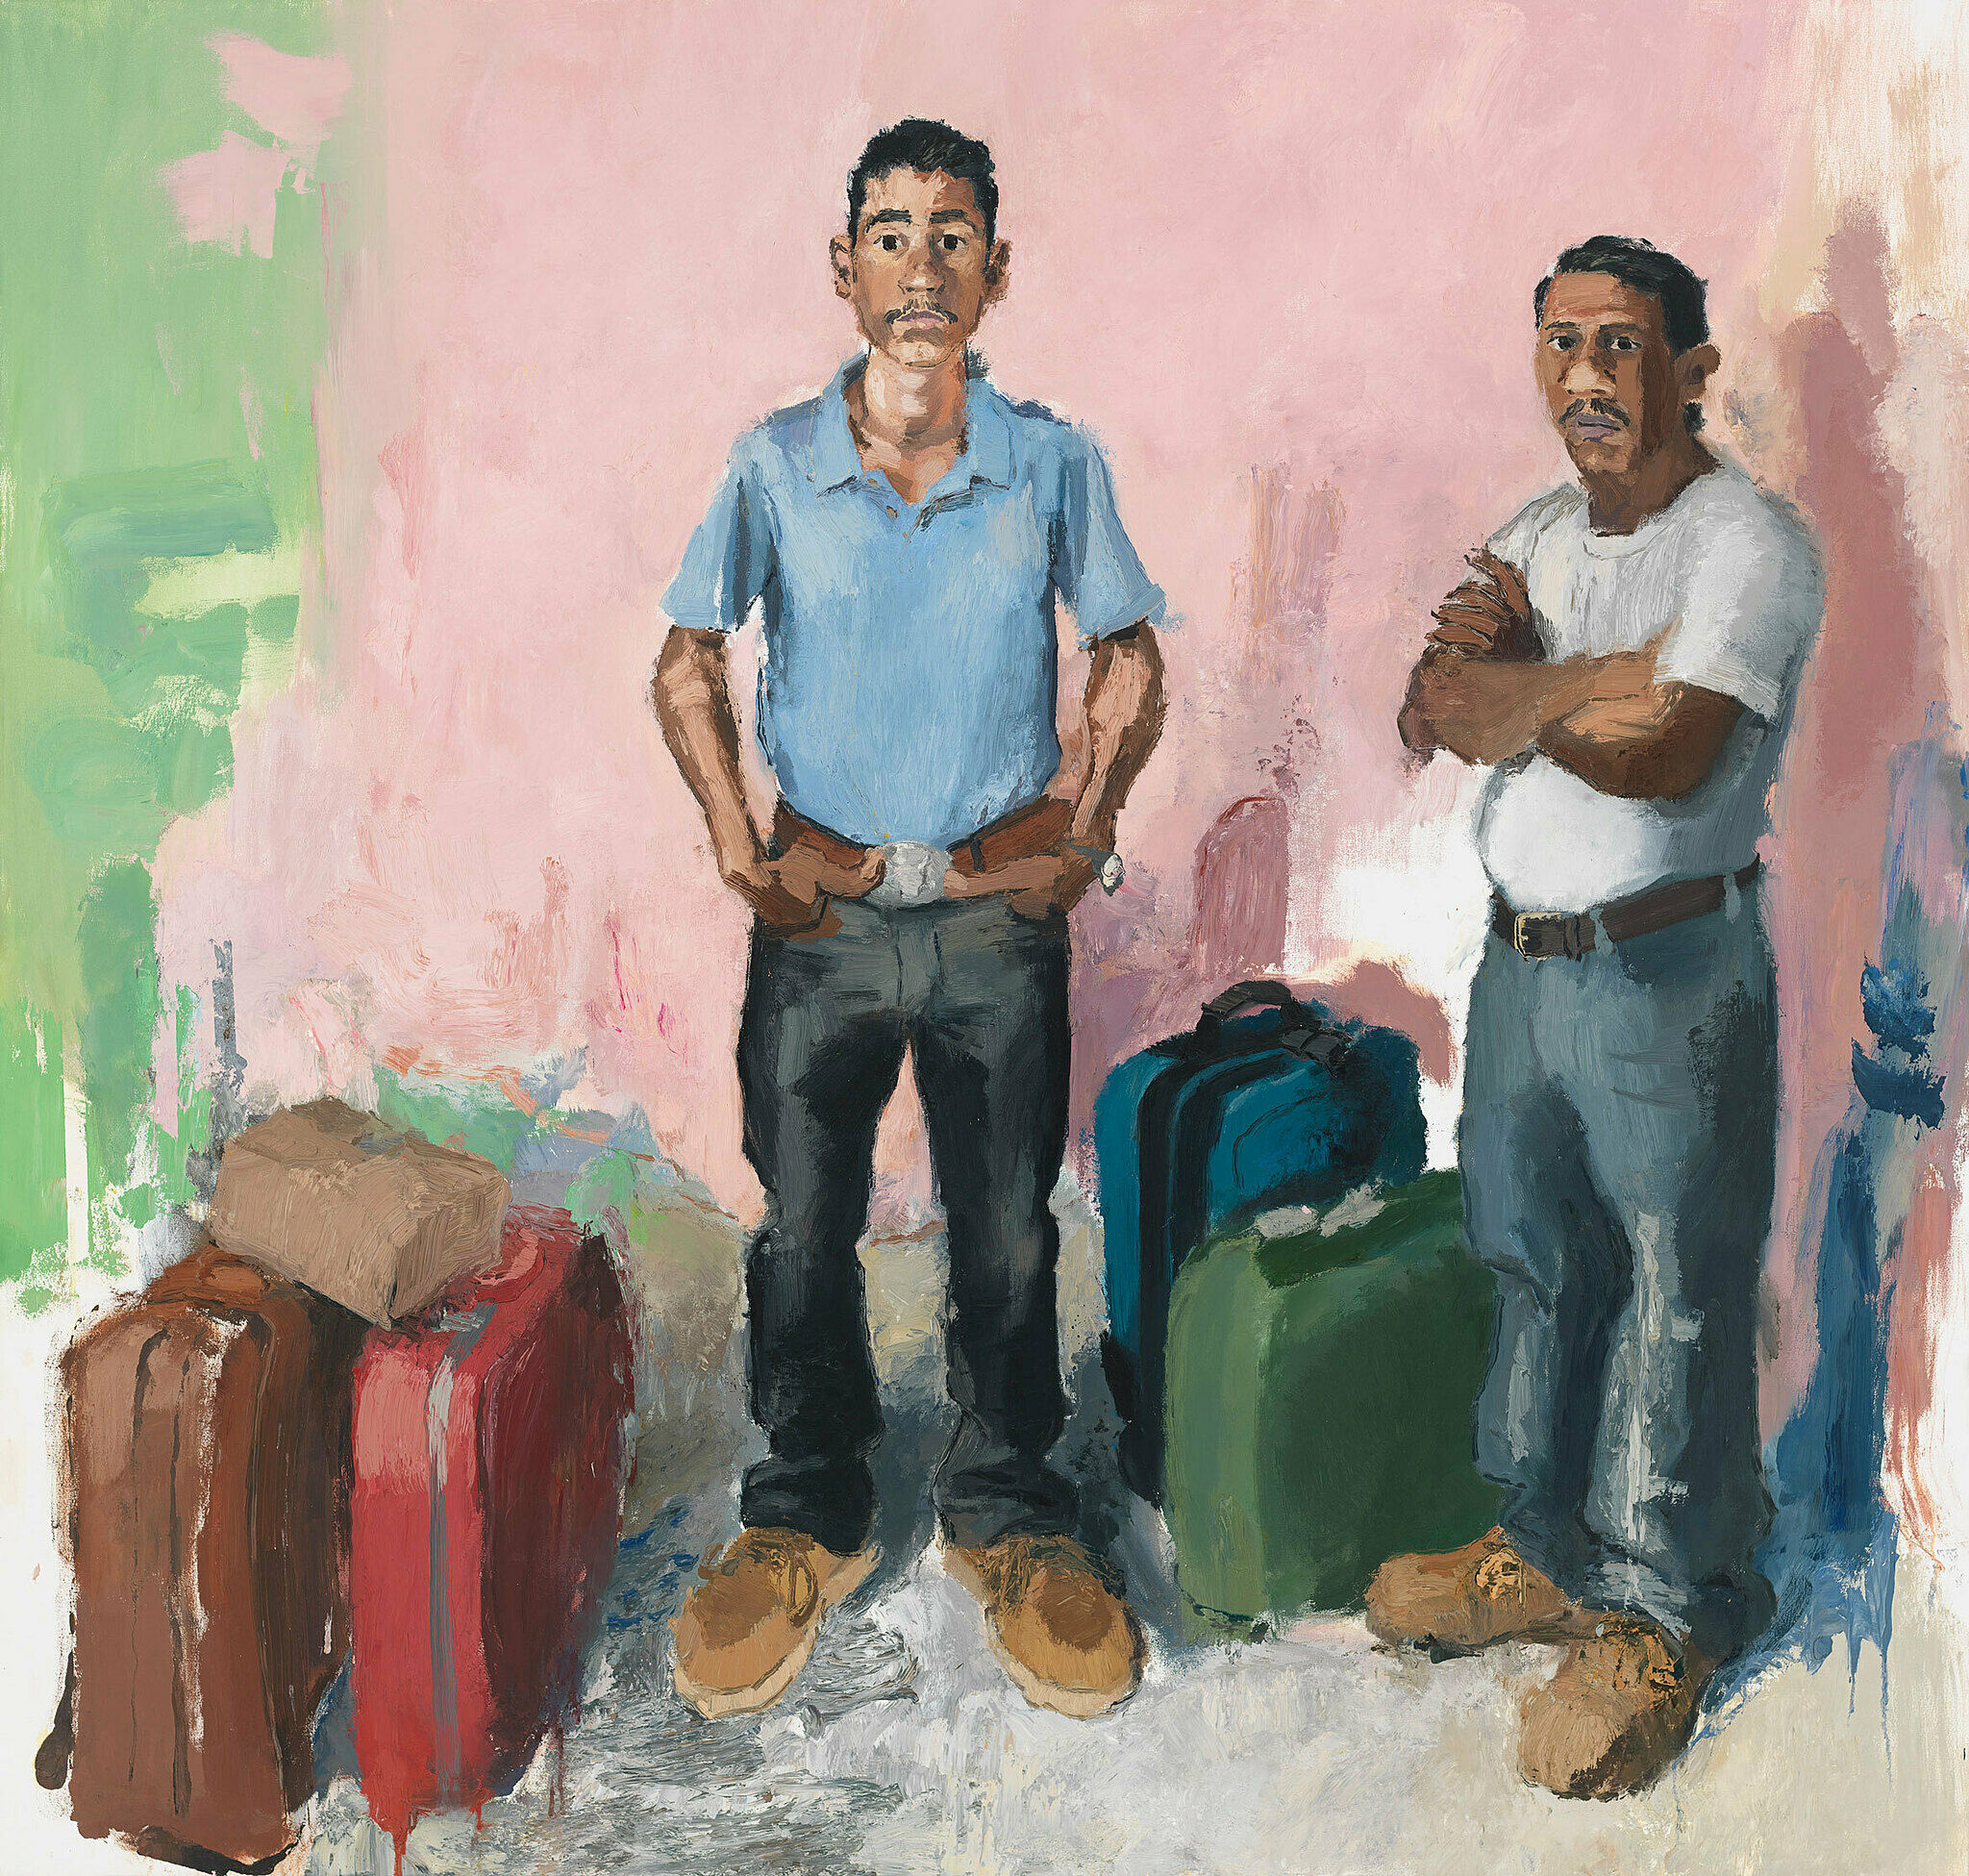 A painting by John Sonsini. Two central figures, Byron and Ramiro, stand with their arms crossed and hands on their hips. Each has two or three packed suitcases next to them